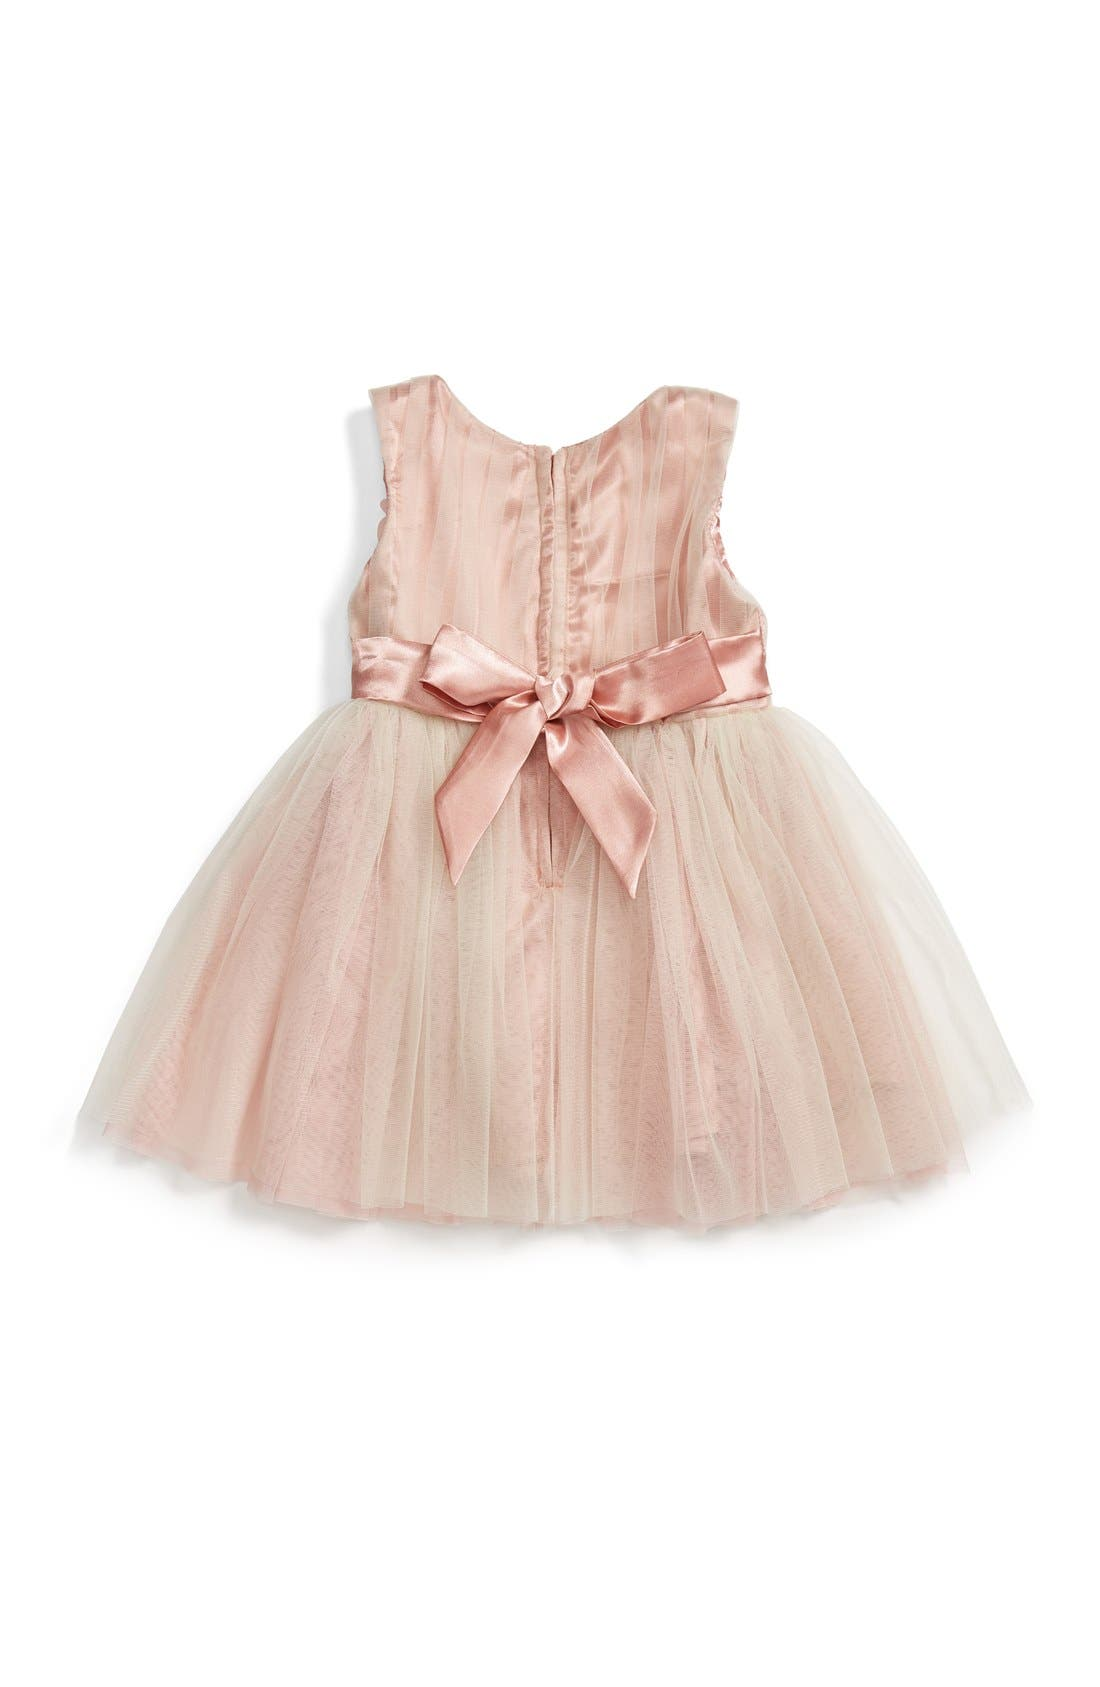 Sleeveless Rosette Tulle Dress,                             Alternate thumbnail 4, color,                             251